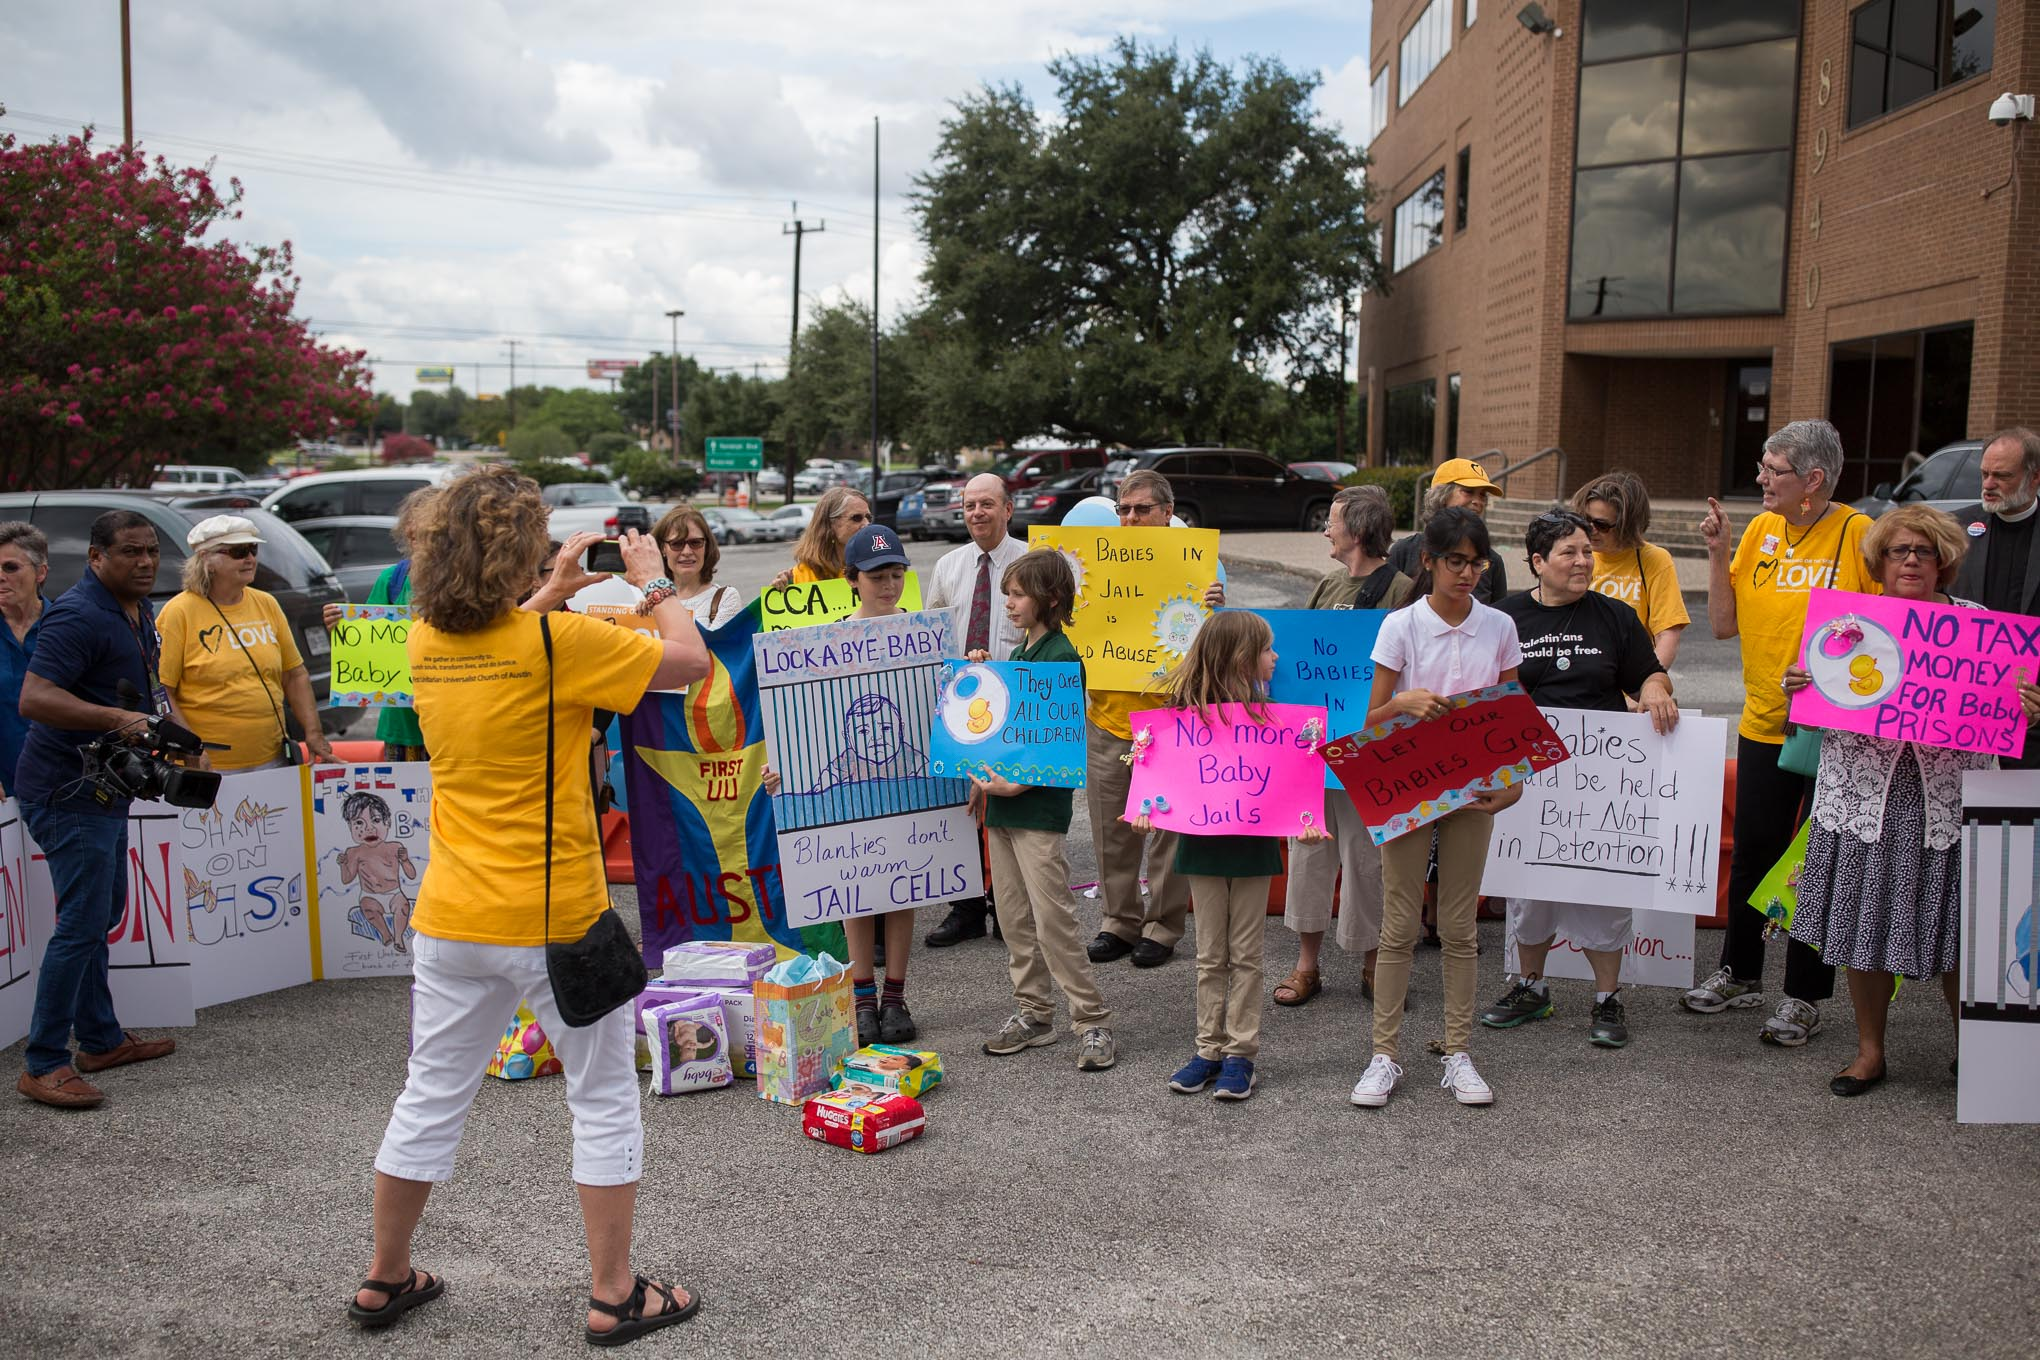 Organizers set up in the parking lot of the United States Citizenship and Immigration Services (USCIS) to protest the imprisonment of underage immigrants in detention facilities. Photo by Scott Ball.